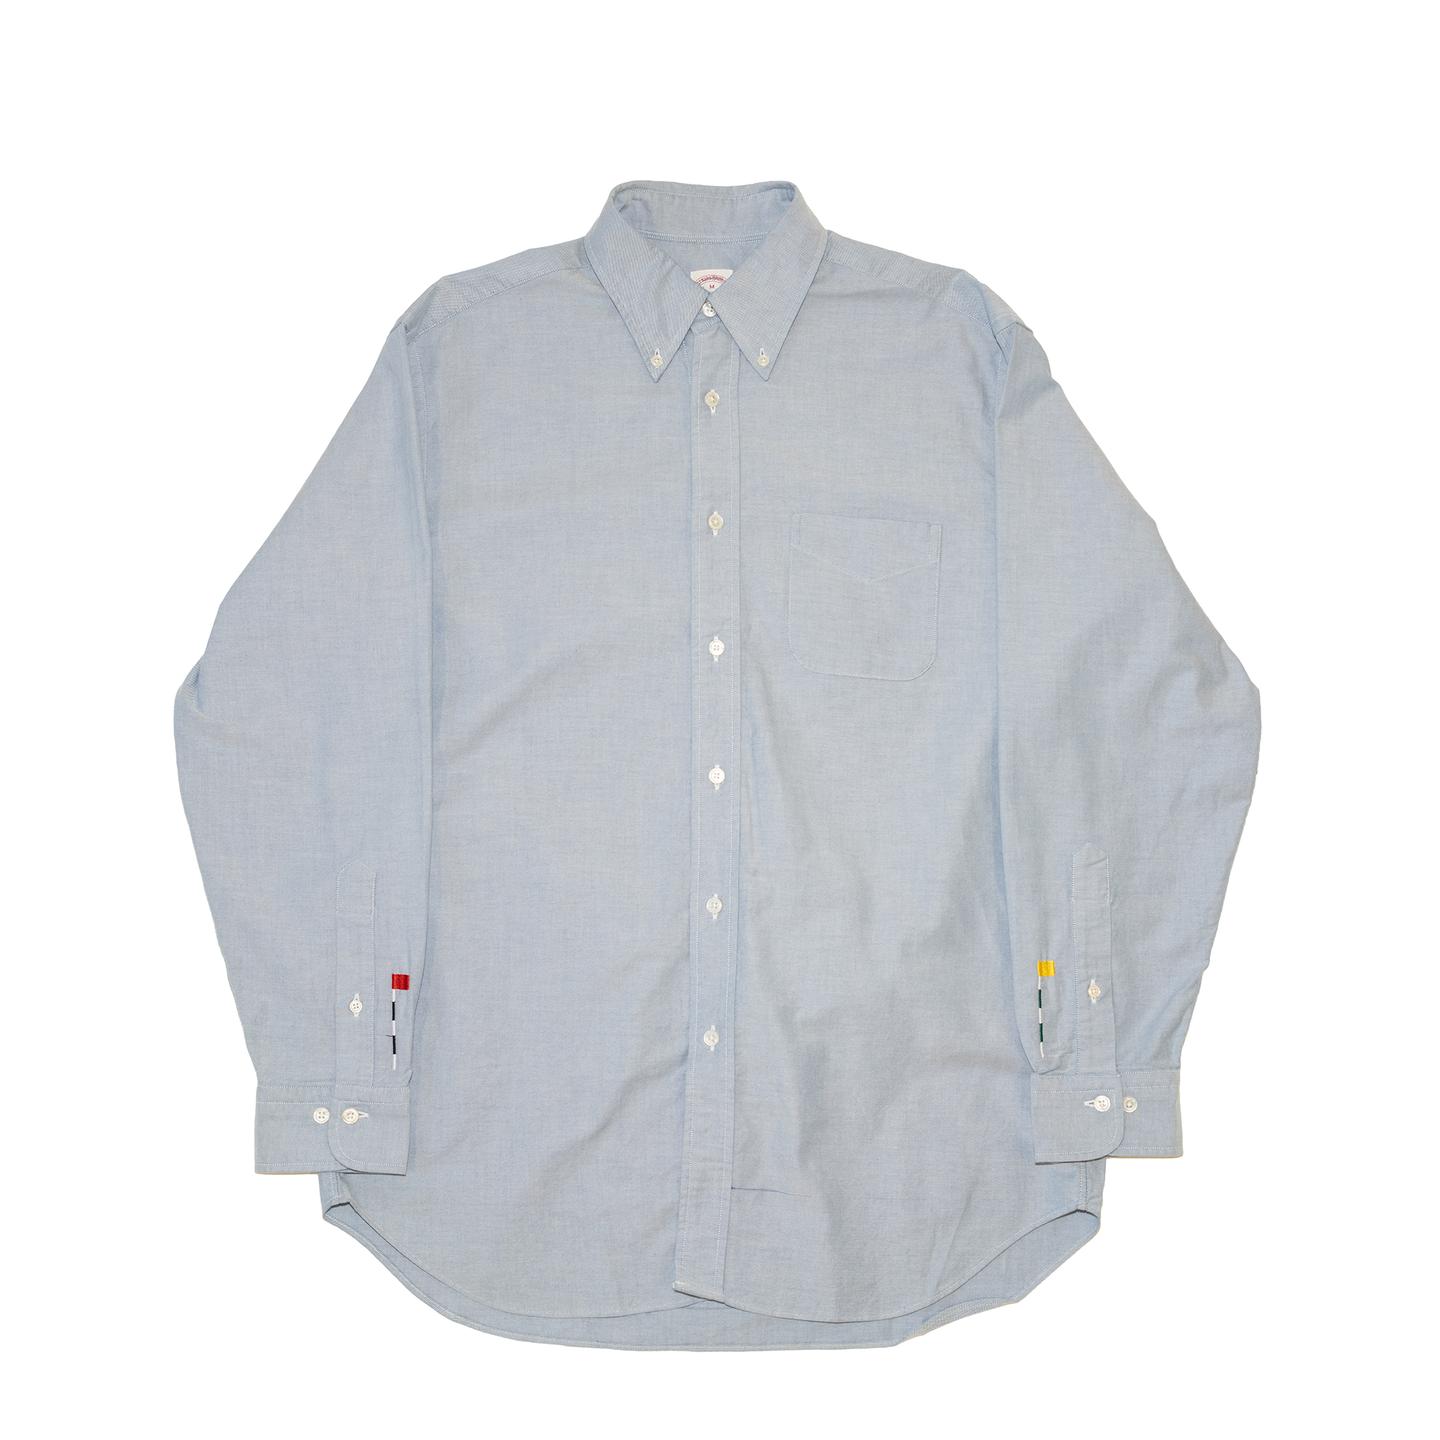 Button Down Shirt with Cuff Embroidery